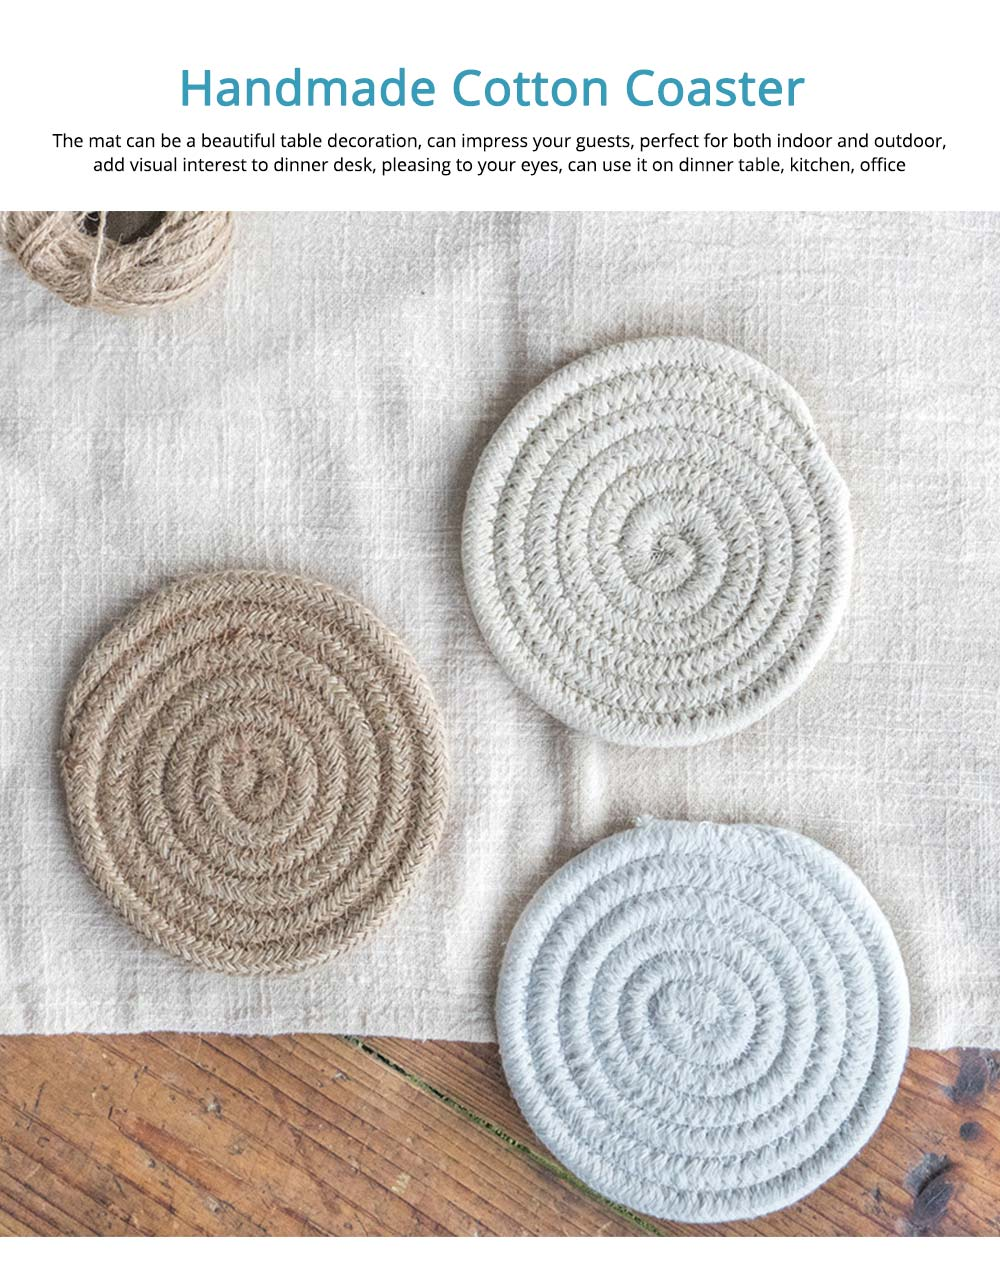 Handmade Cotton Coaster with Round Shape, Stylish Hot Pot Mat with Woven Rope for Kitchen, Office 0